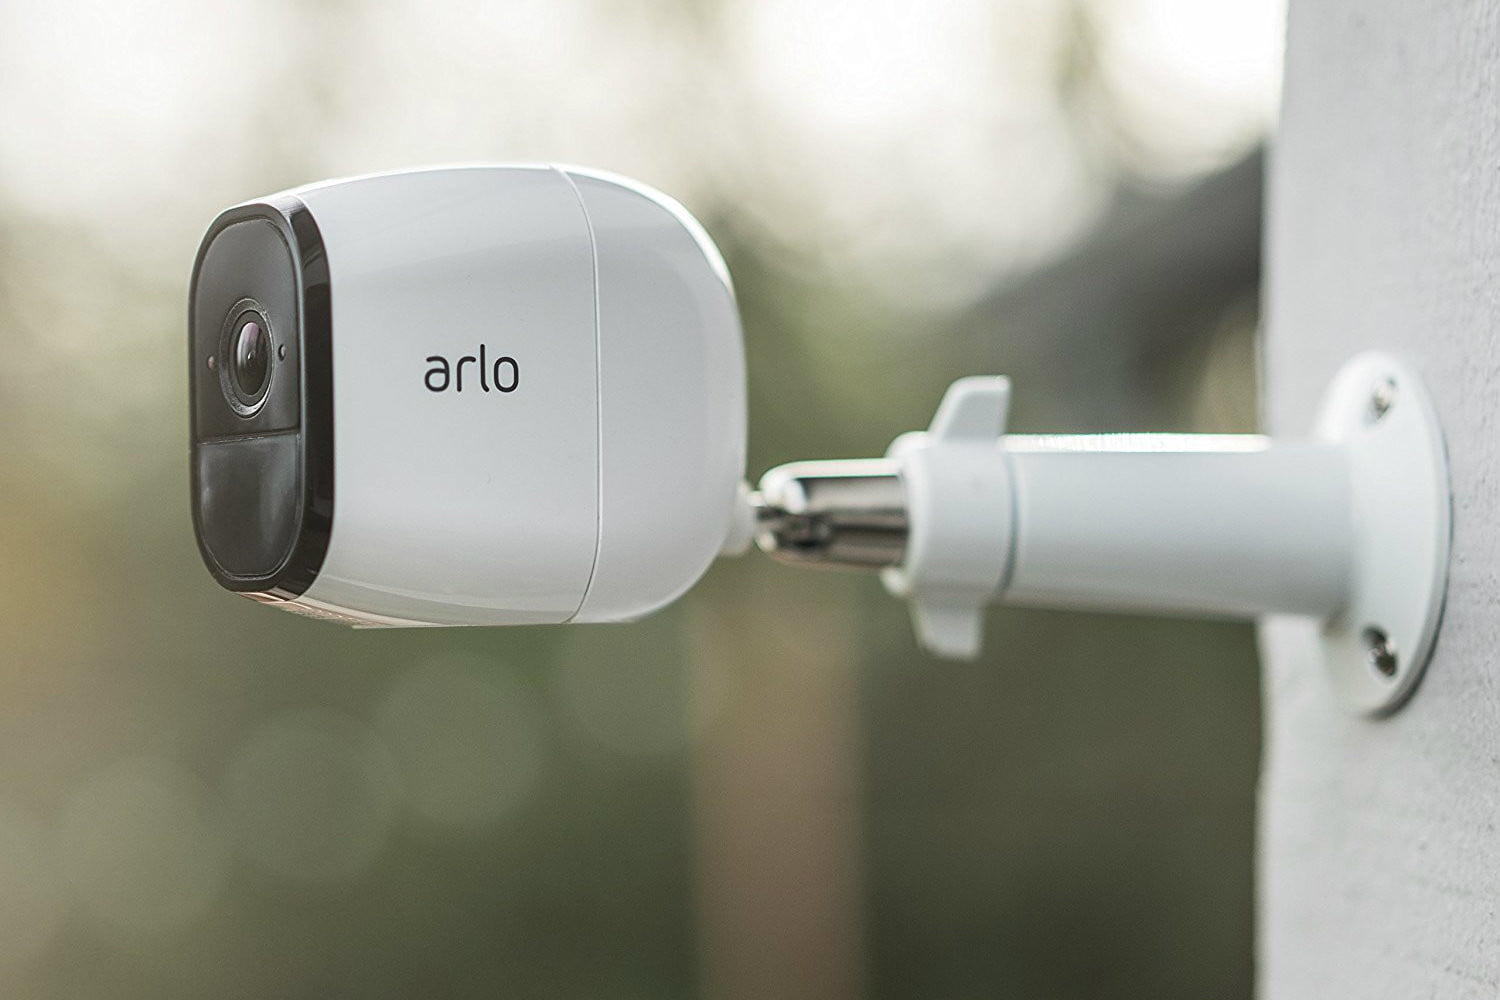 Netgear Arlo Power Adapters Are Recalled for Fire Risk